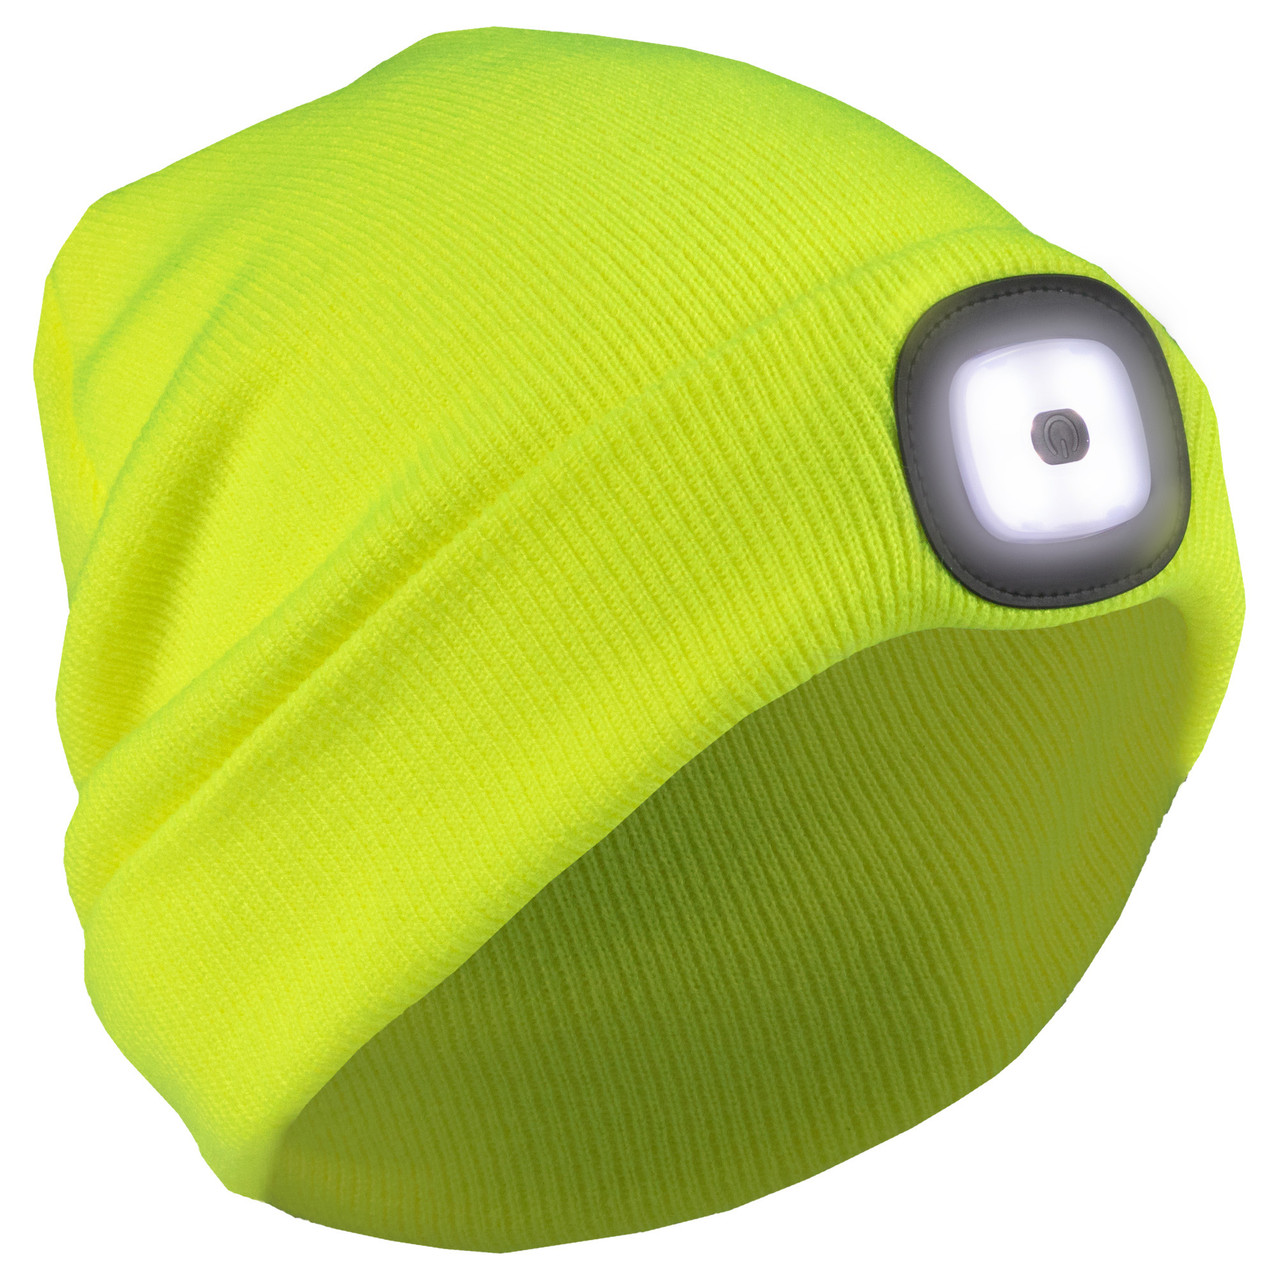 Knit Cap with Rechargeable LED Light (ERB-63197)